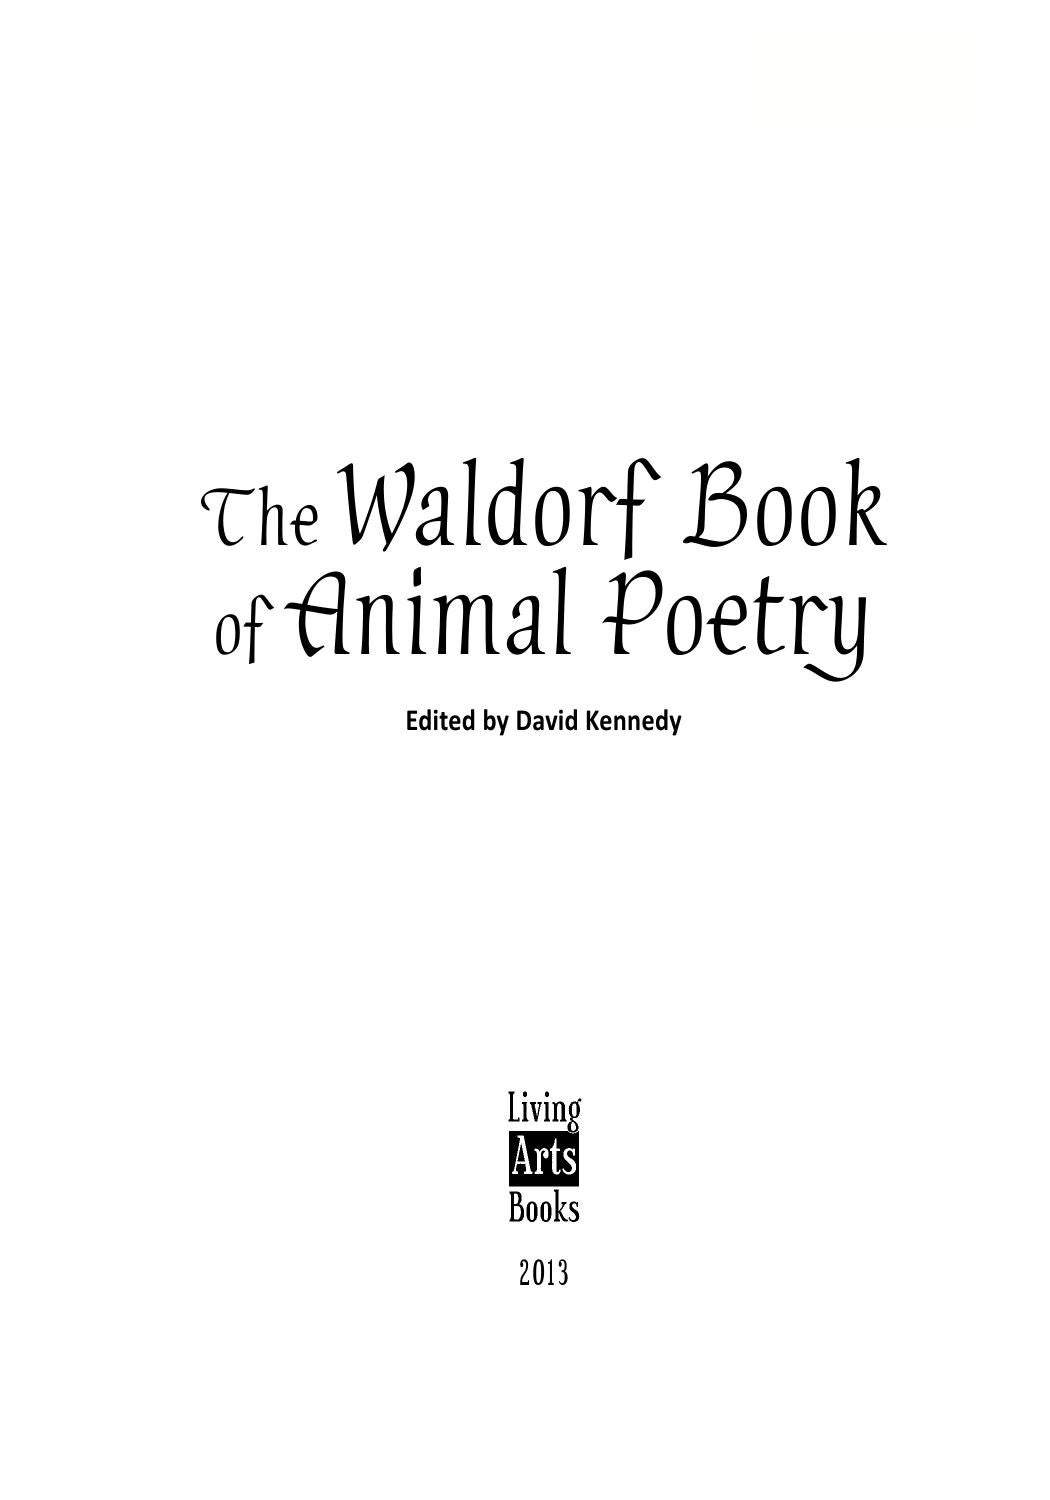 Swell Waldorf Book Of Animal Poetry Look Inside At Over 100 Uwap Interior Chair Design Uwaporg